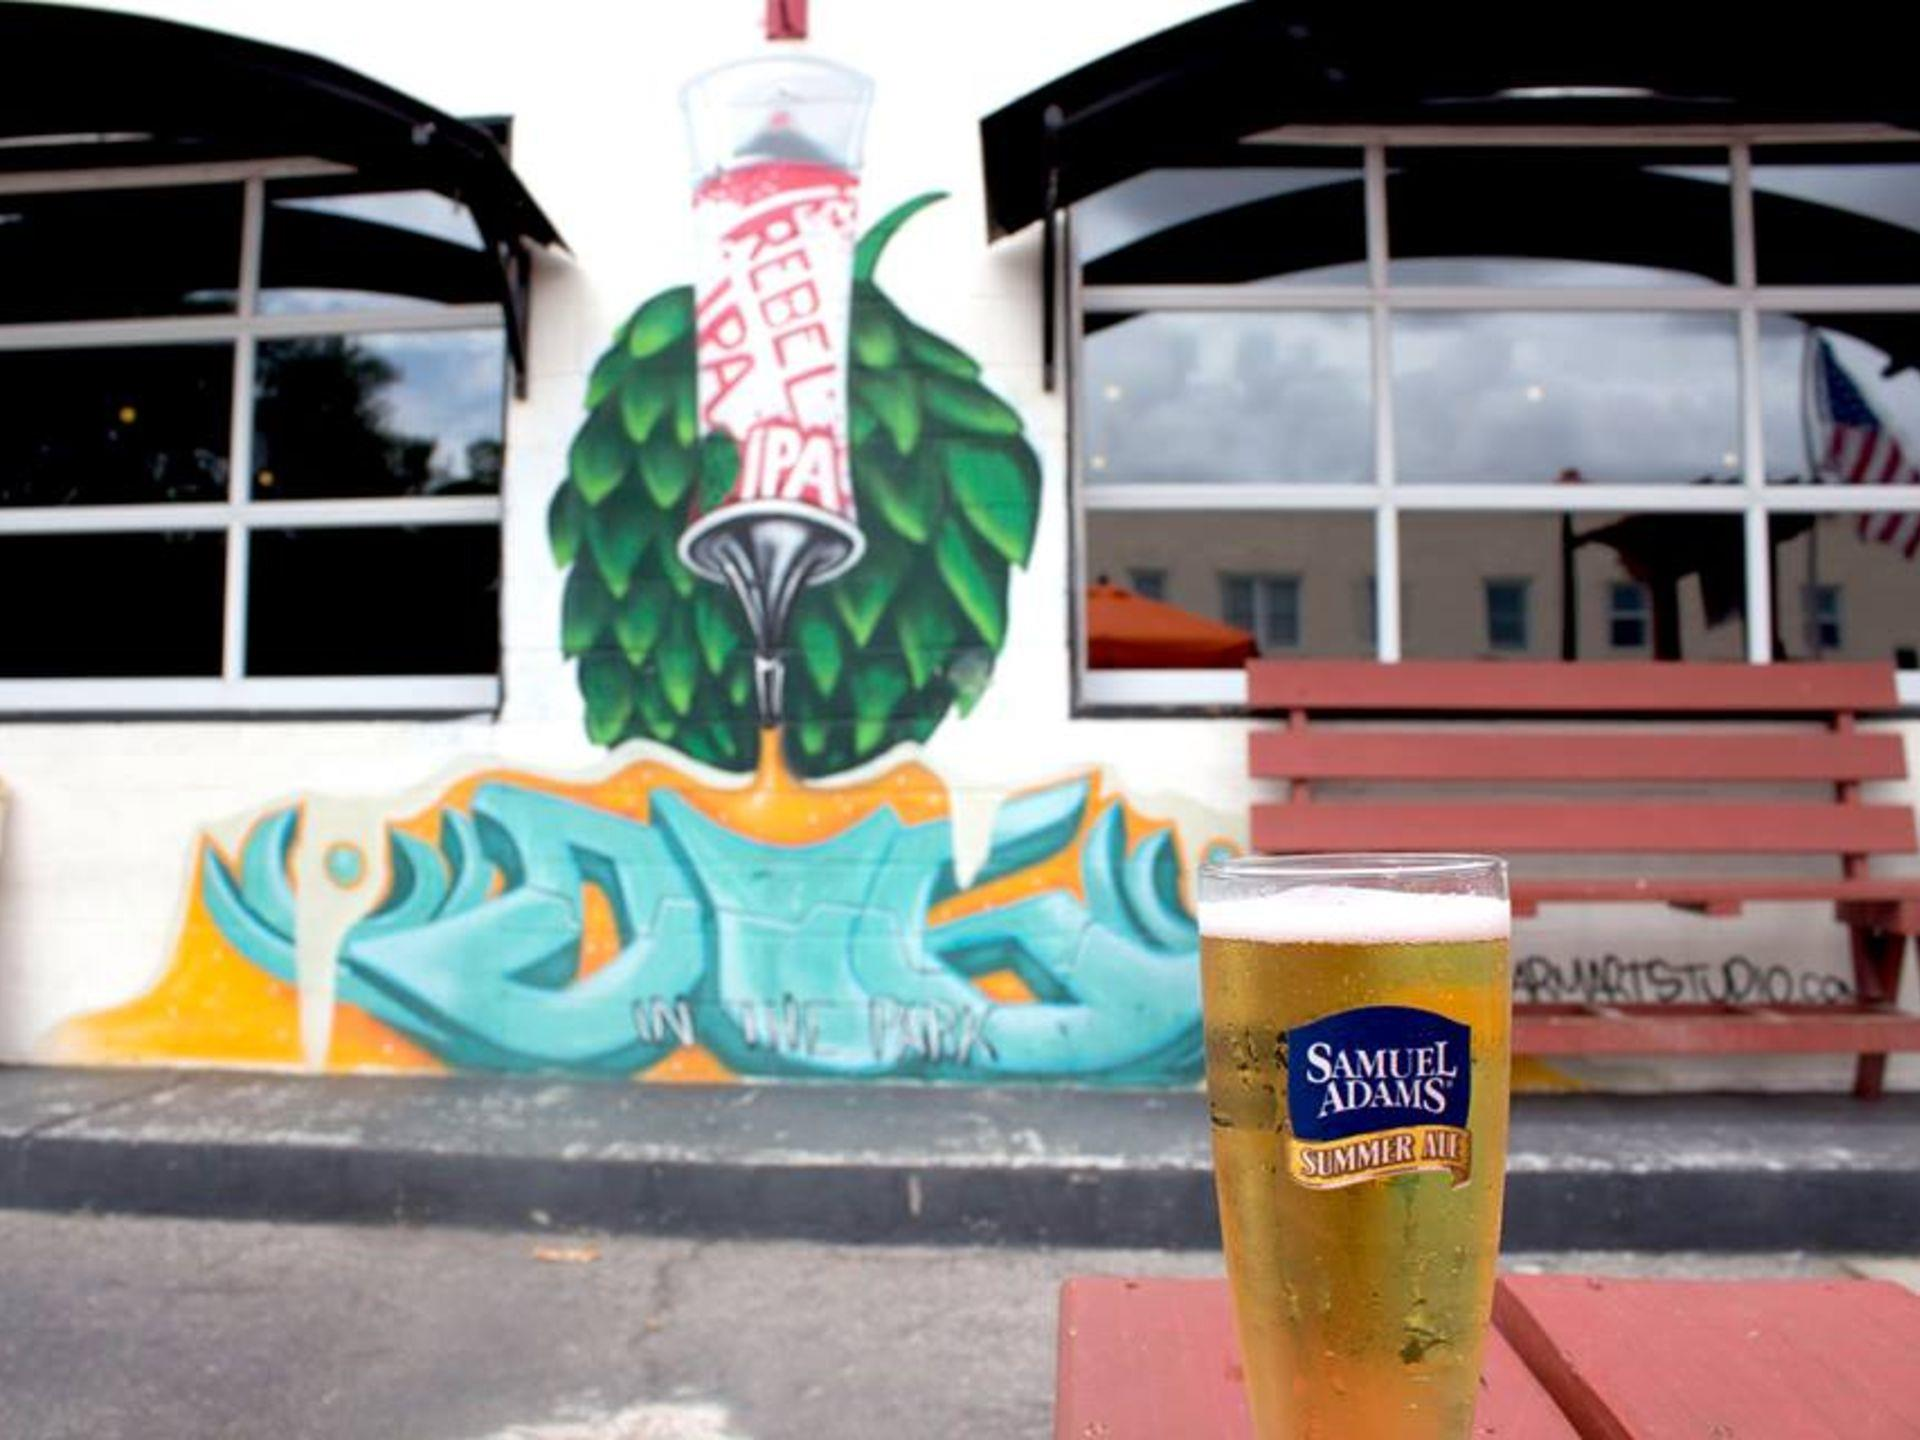 Samuel Adams beer on a table in front of a mural on a wall